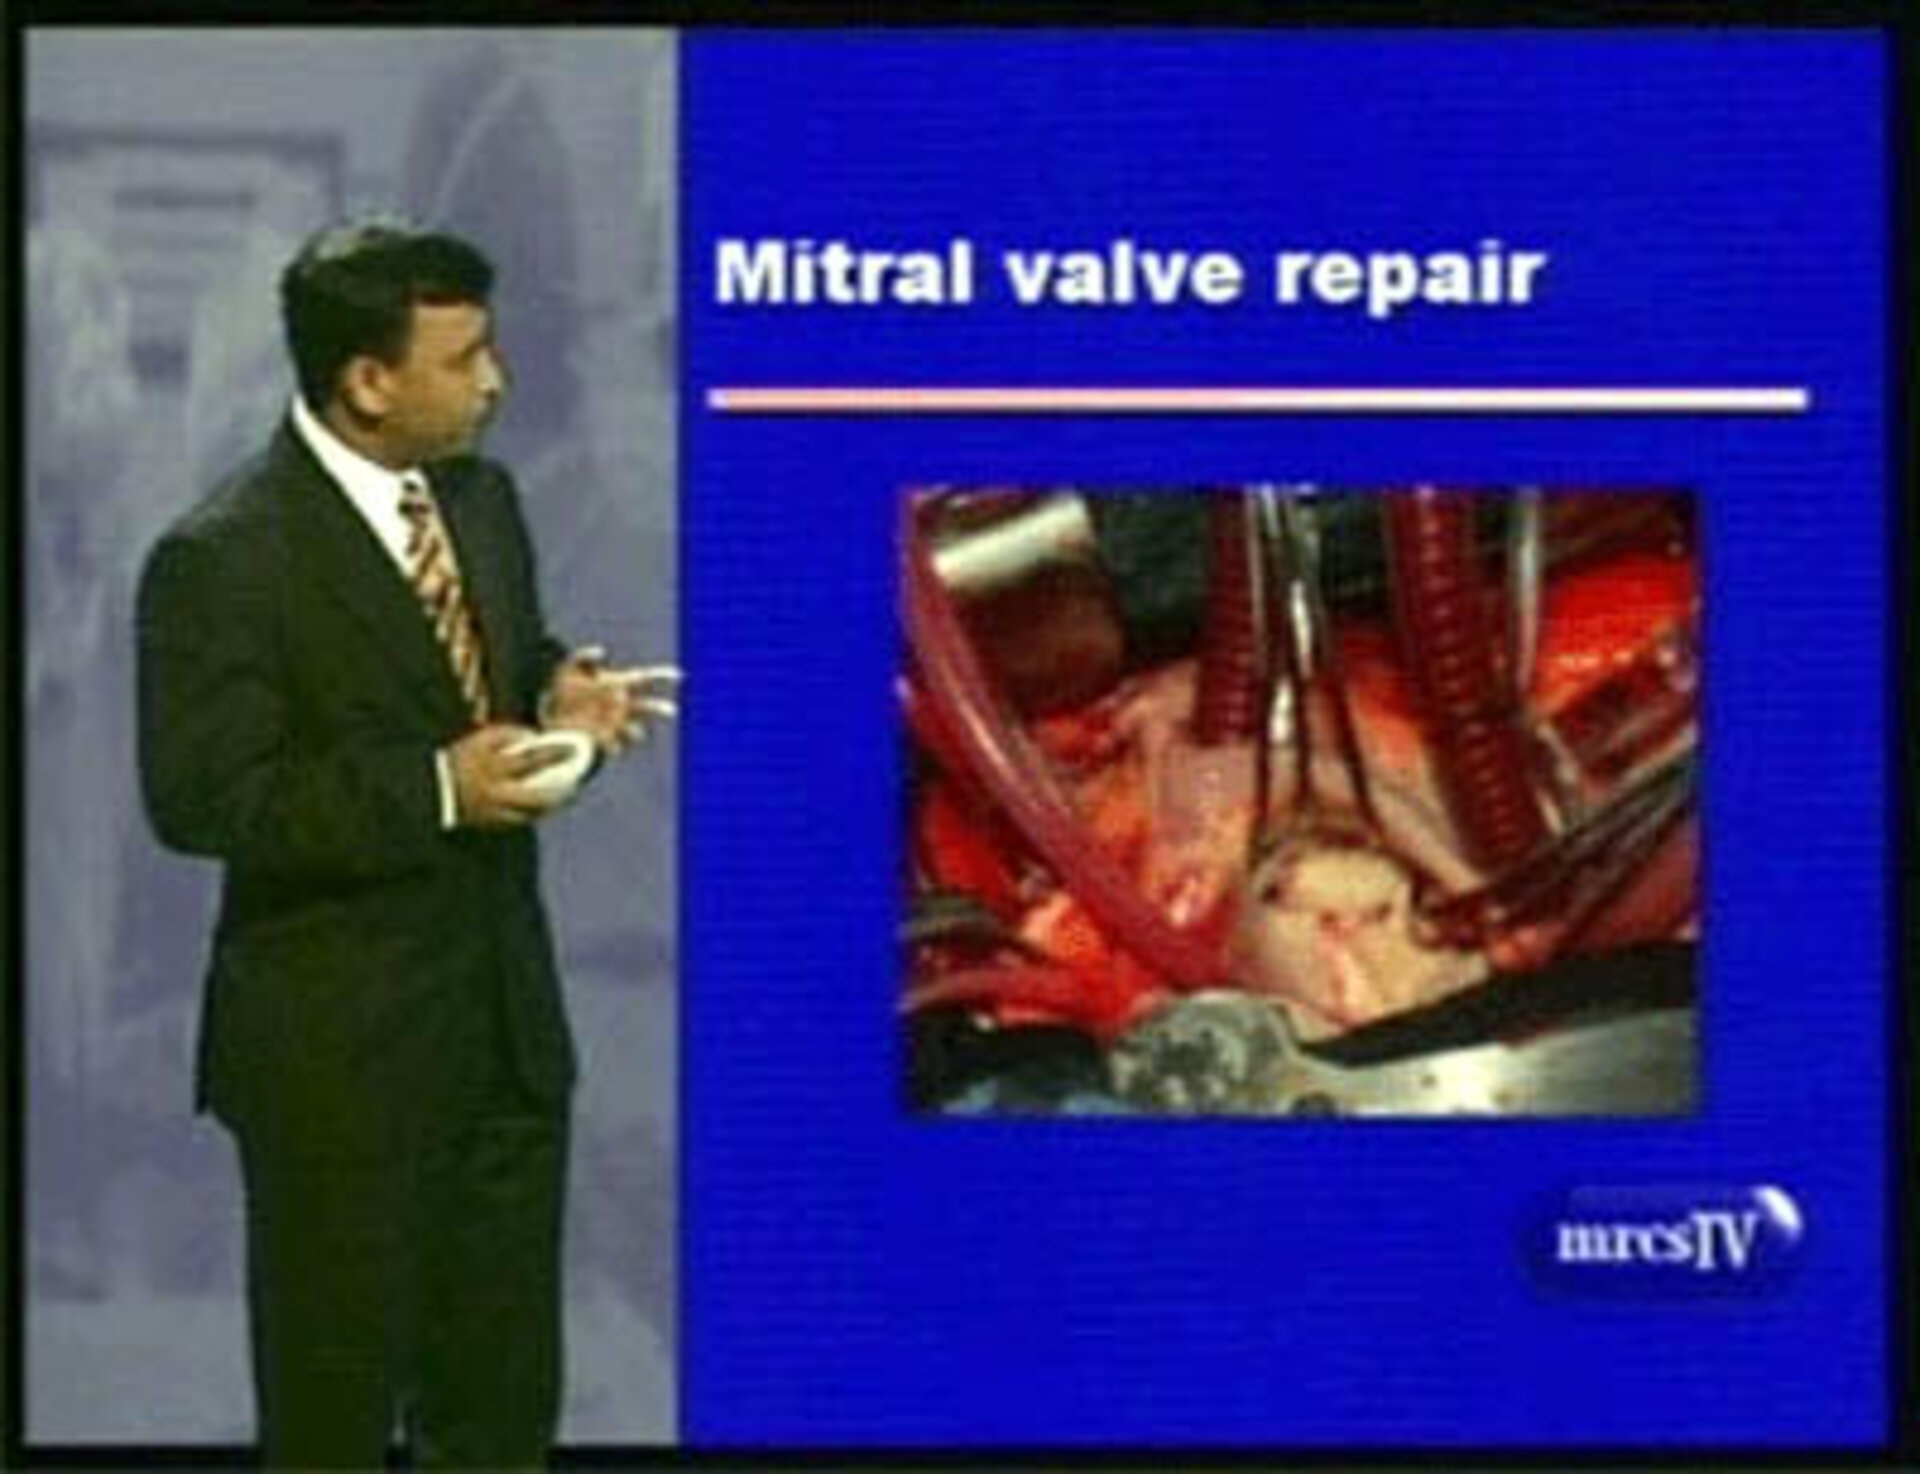 mrcsTV lets students interact with surgical tutors in live lectures